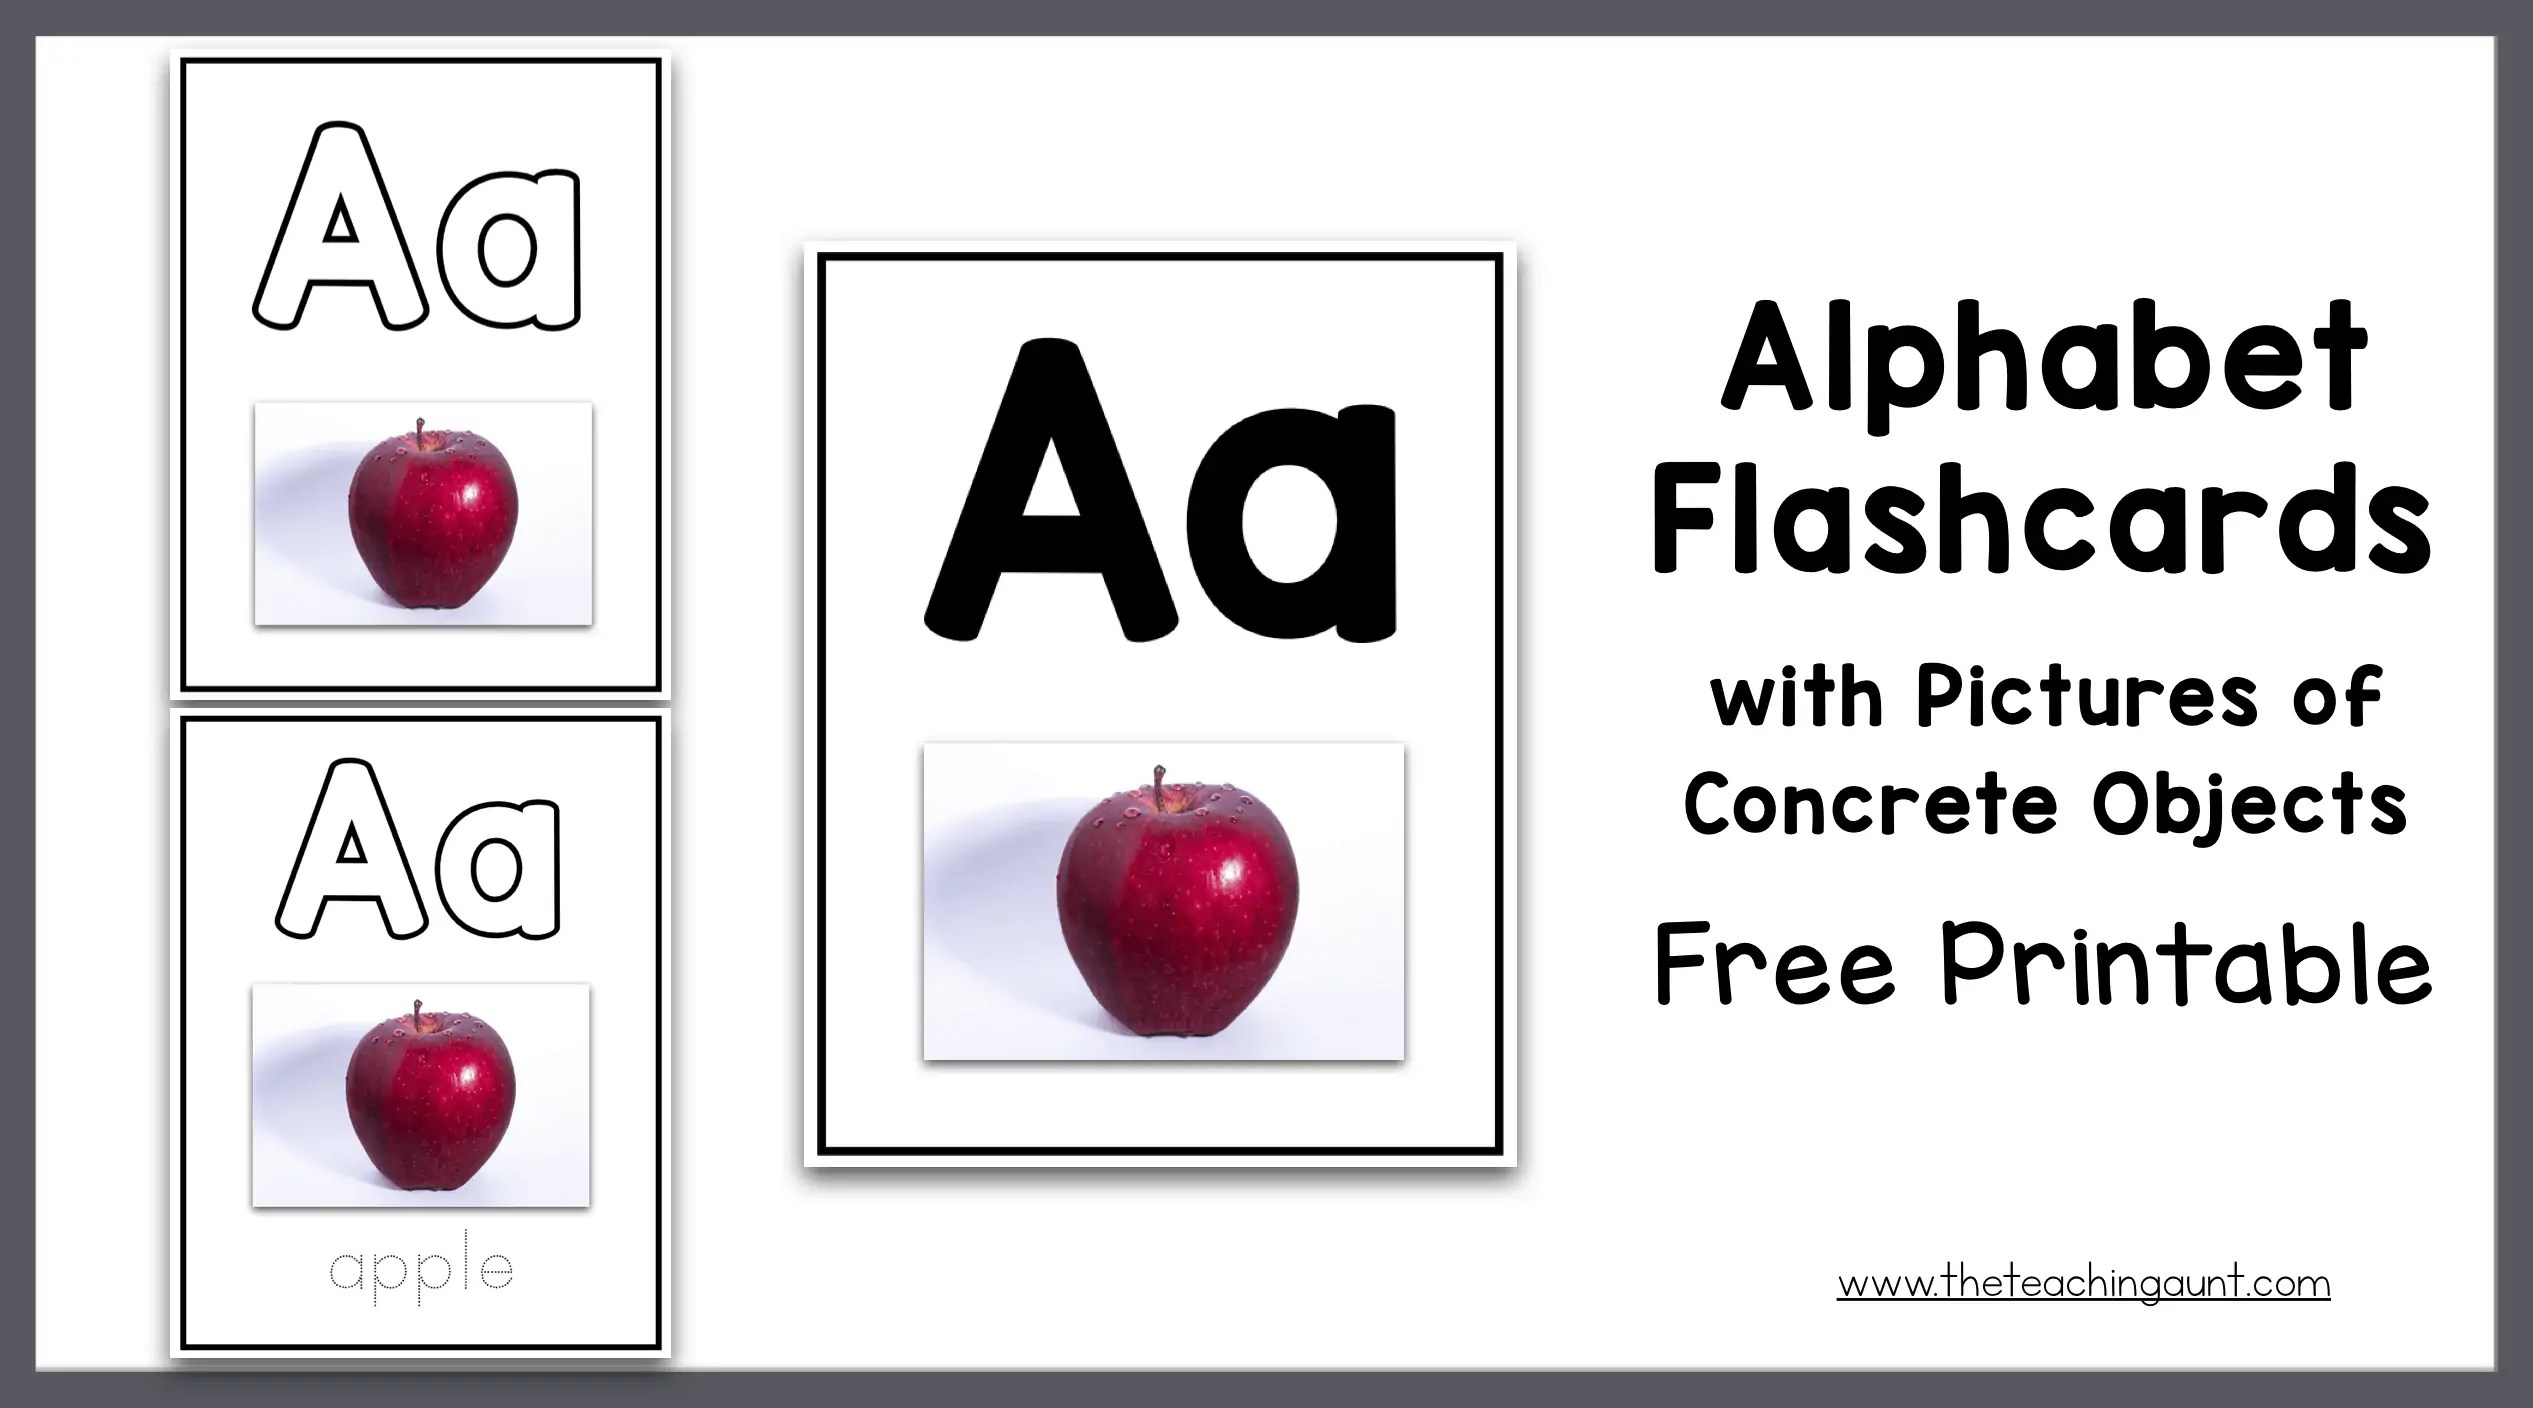 graphic regarding Free Printable Alphabet Flash Cards named Alphabet Flashcards with Pics of Concrete Products - The